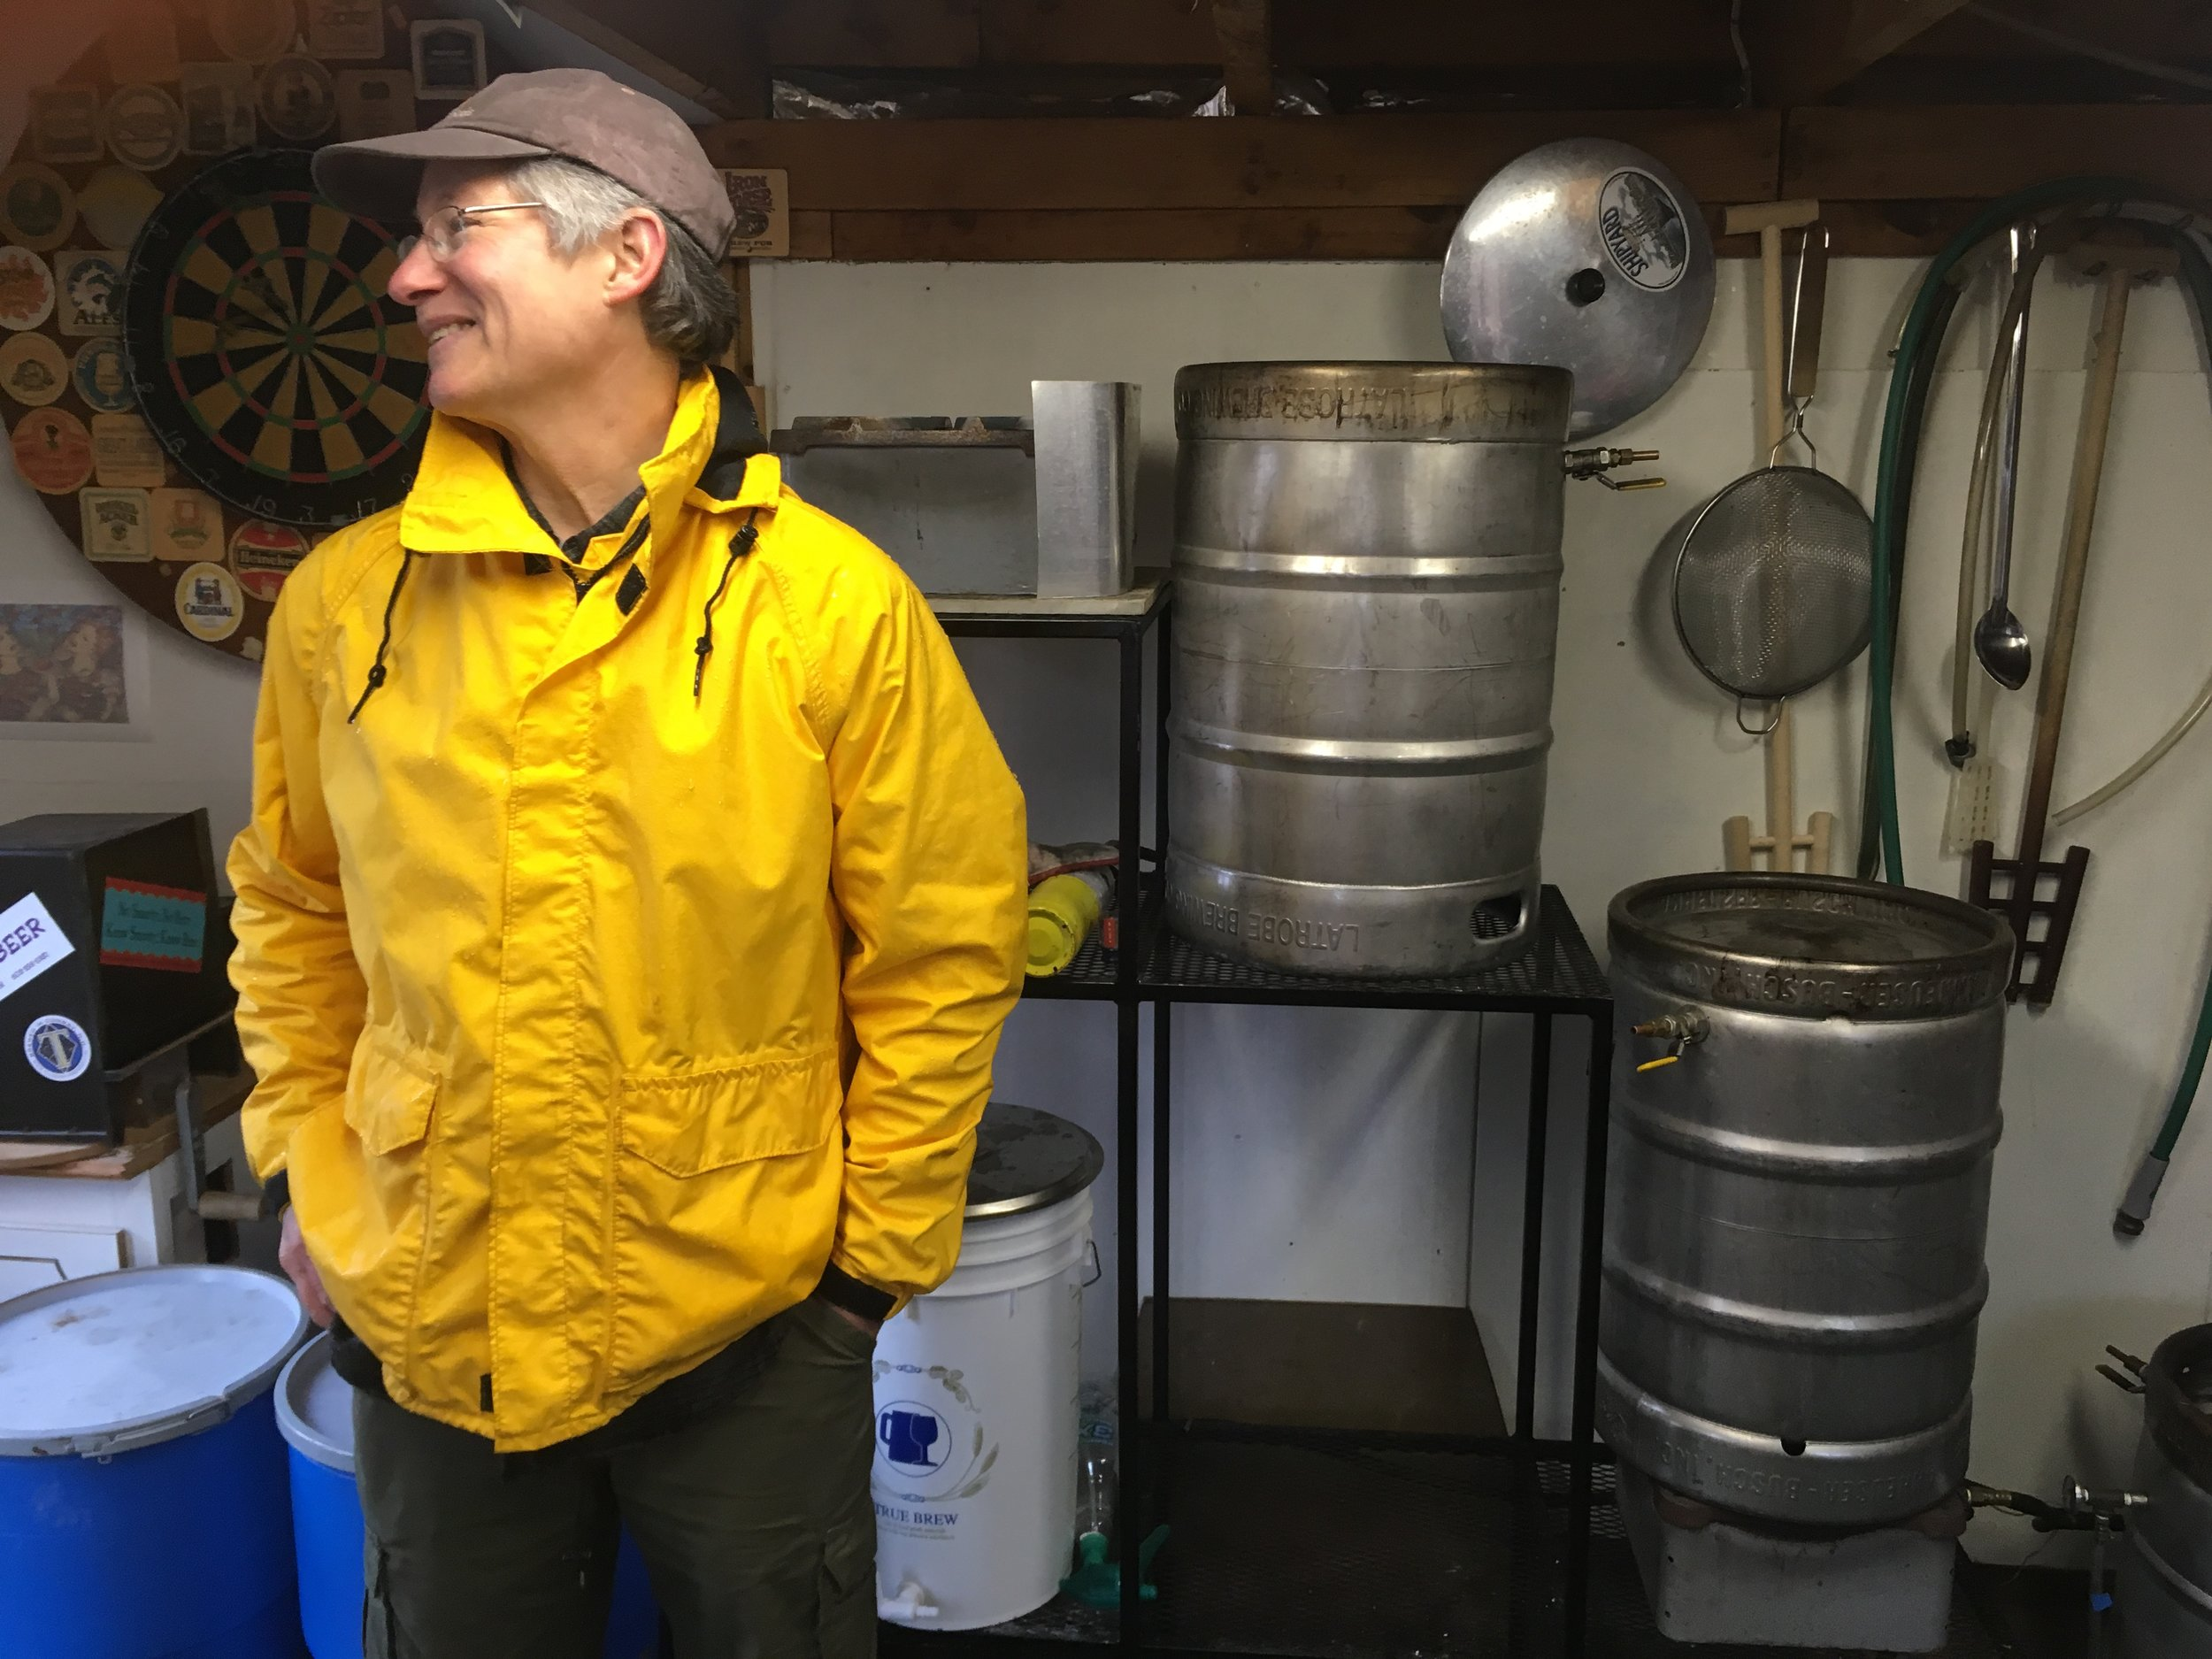 Inside ken Hardcastle's wine and beer making laboratory   Photo: Taylor Quimby